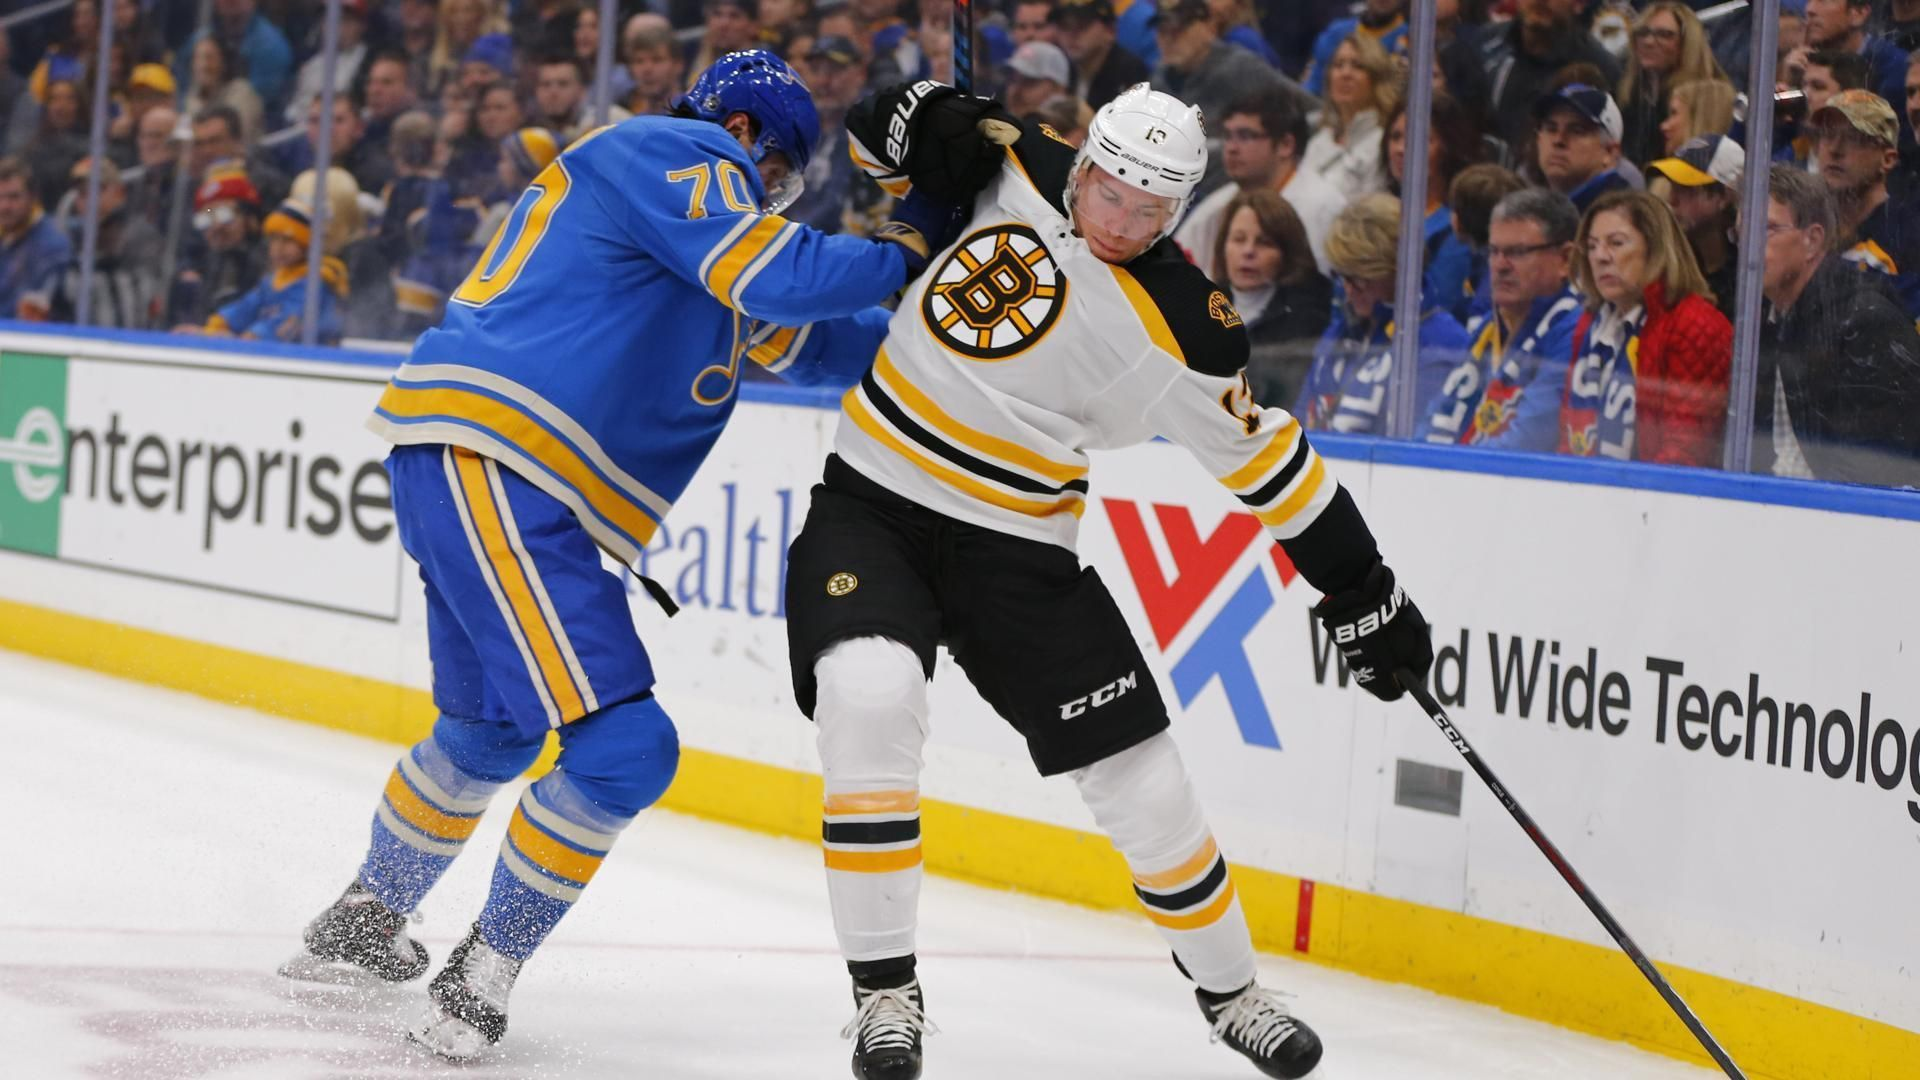 Blues End Bruins Seven Game Winning Streak In Shootout The Boston Globe Bruins St Louis Blues Usa Today Sports